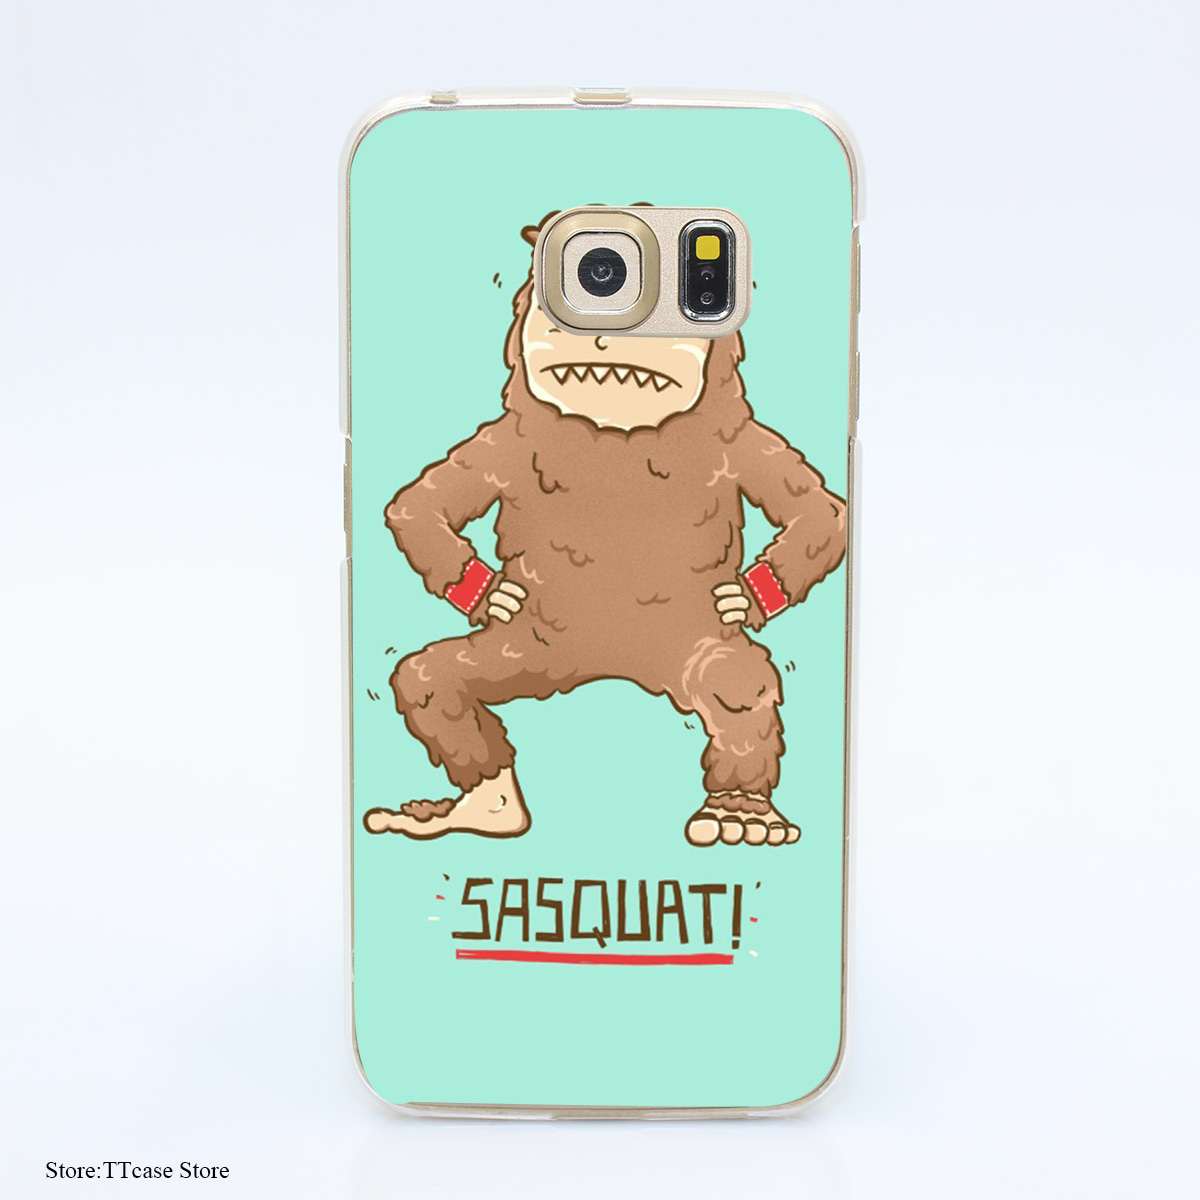 2896G Sasquatch 70k Print Hard Transparent Case Cover for Galaxy S3 S4 S5 & Mini S6 S7 & edge